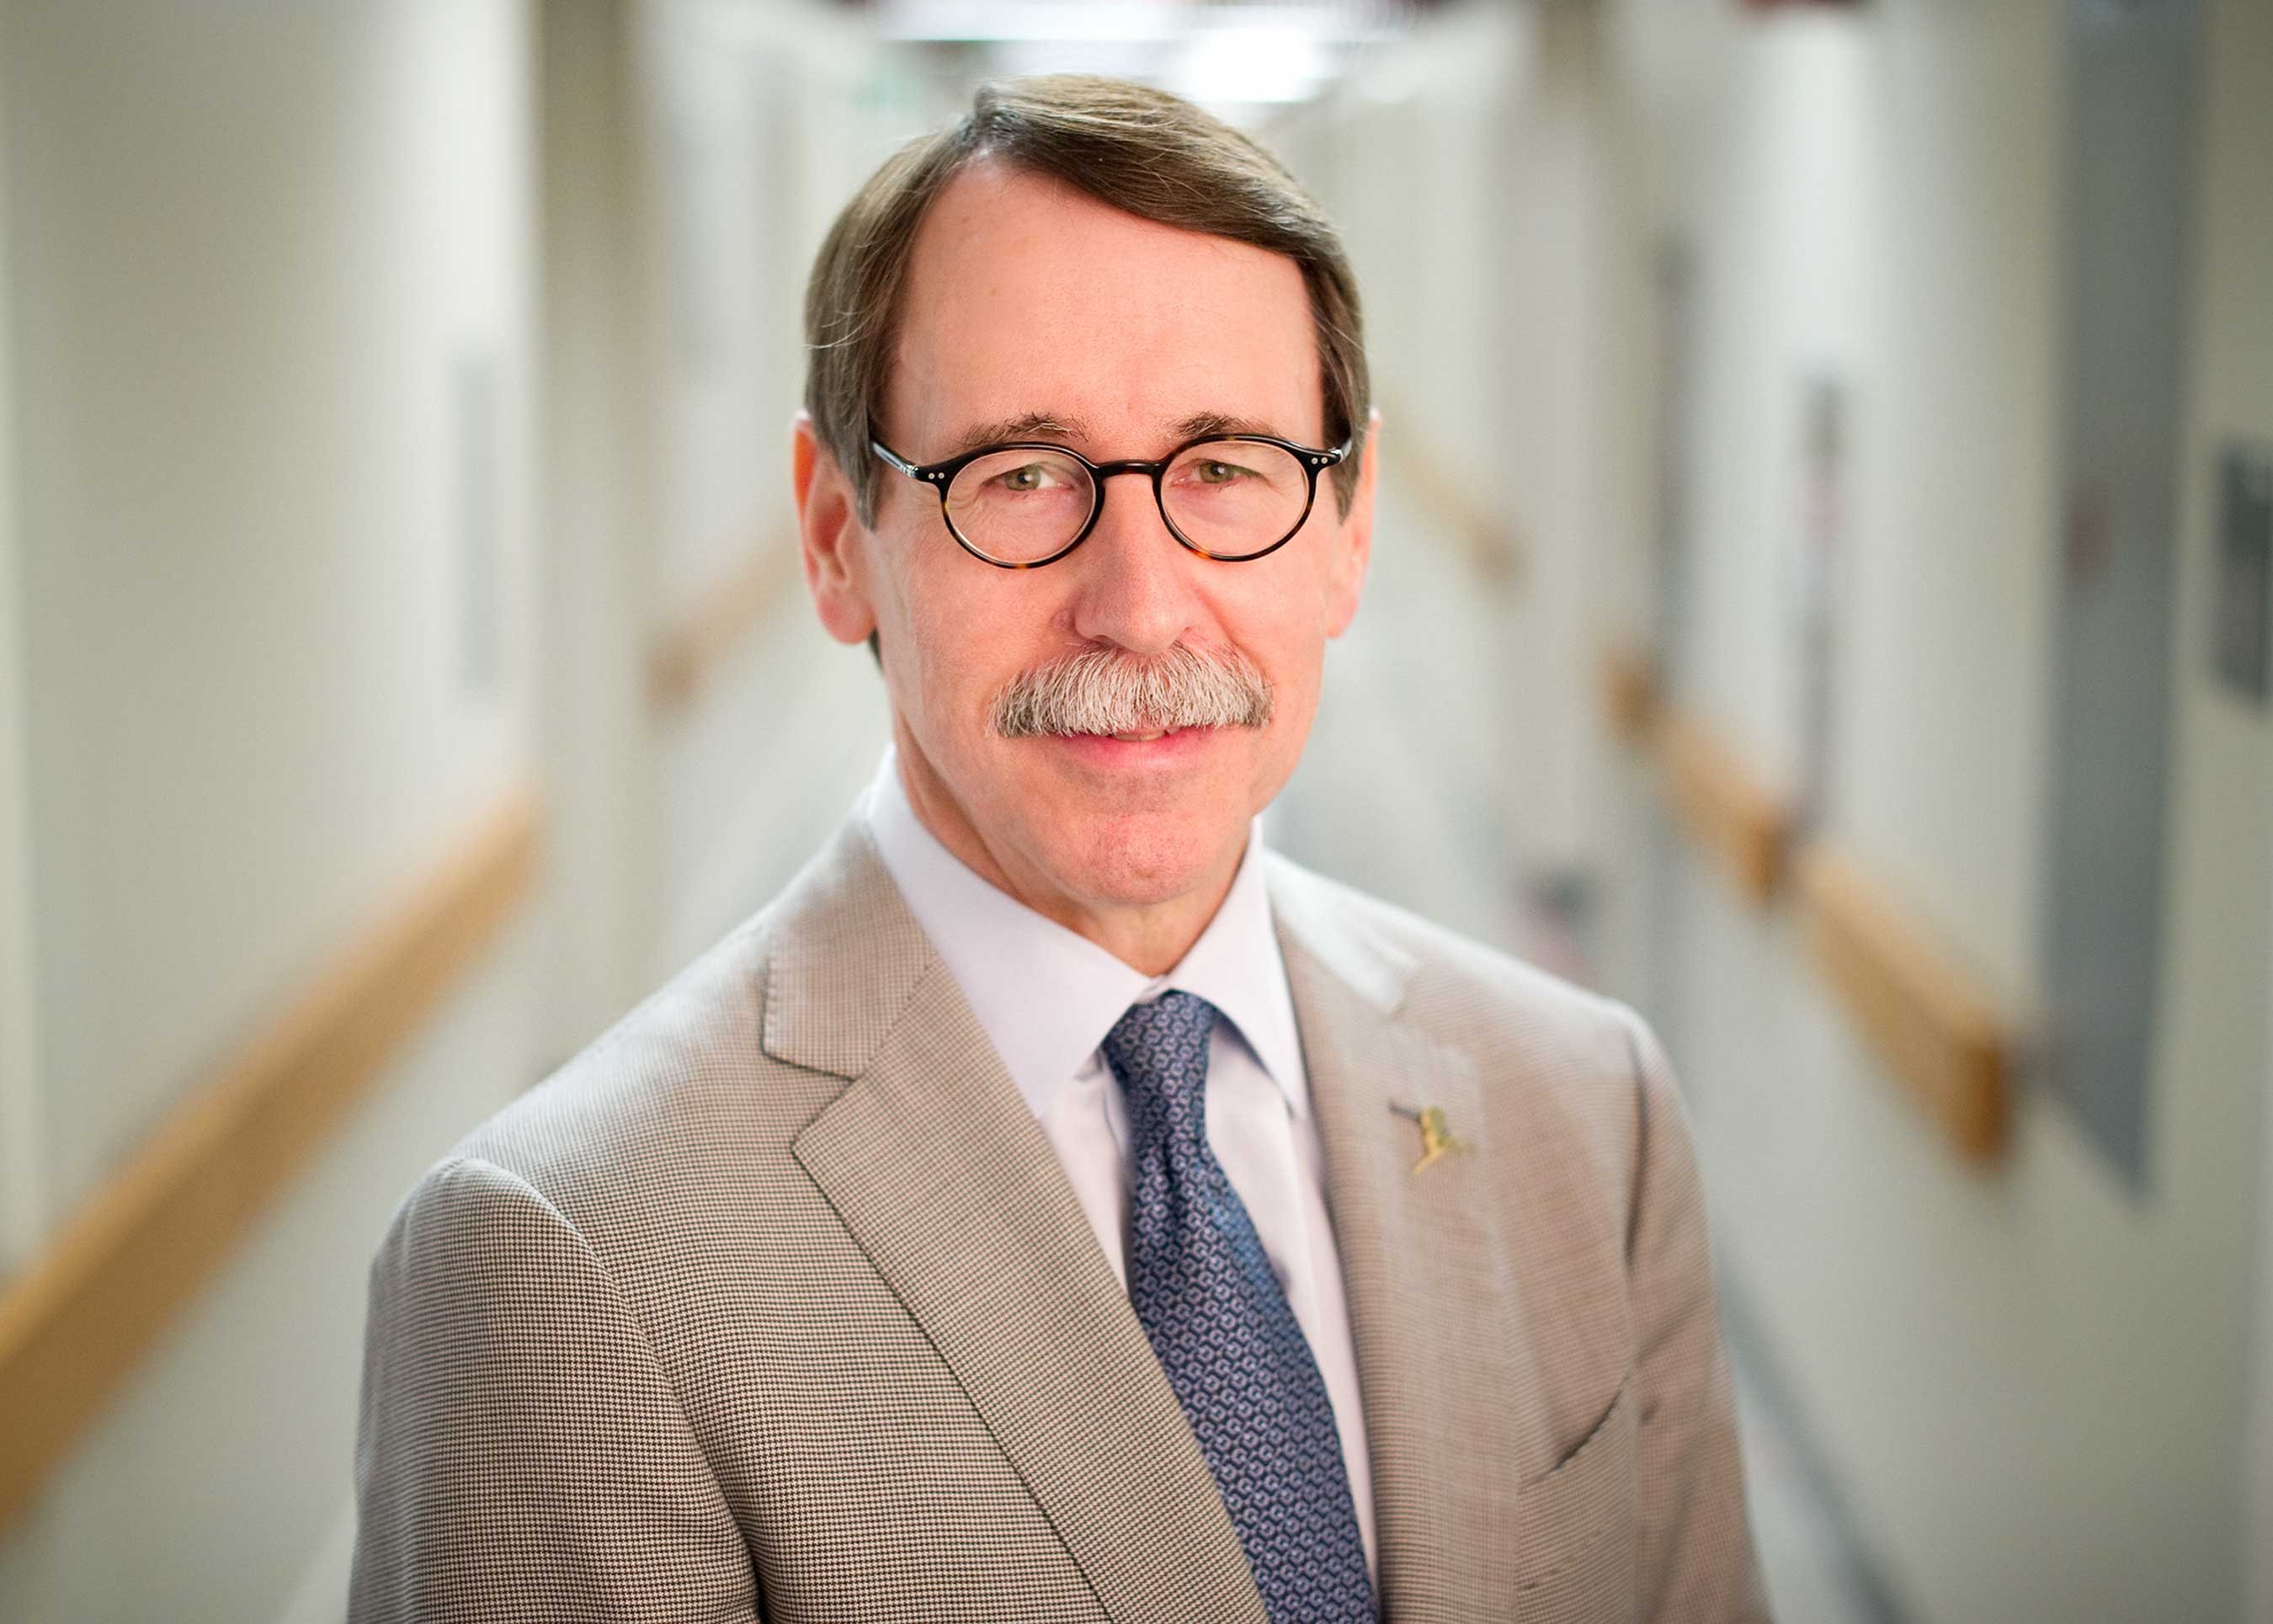 James R. Downing, M.D., president and chief executive officer of St. Jude Children's Research Hospital, was instrumental in launching next-generation DNA sequencing and its treatment applications.